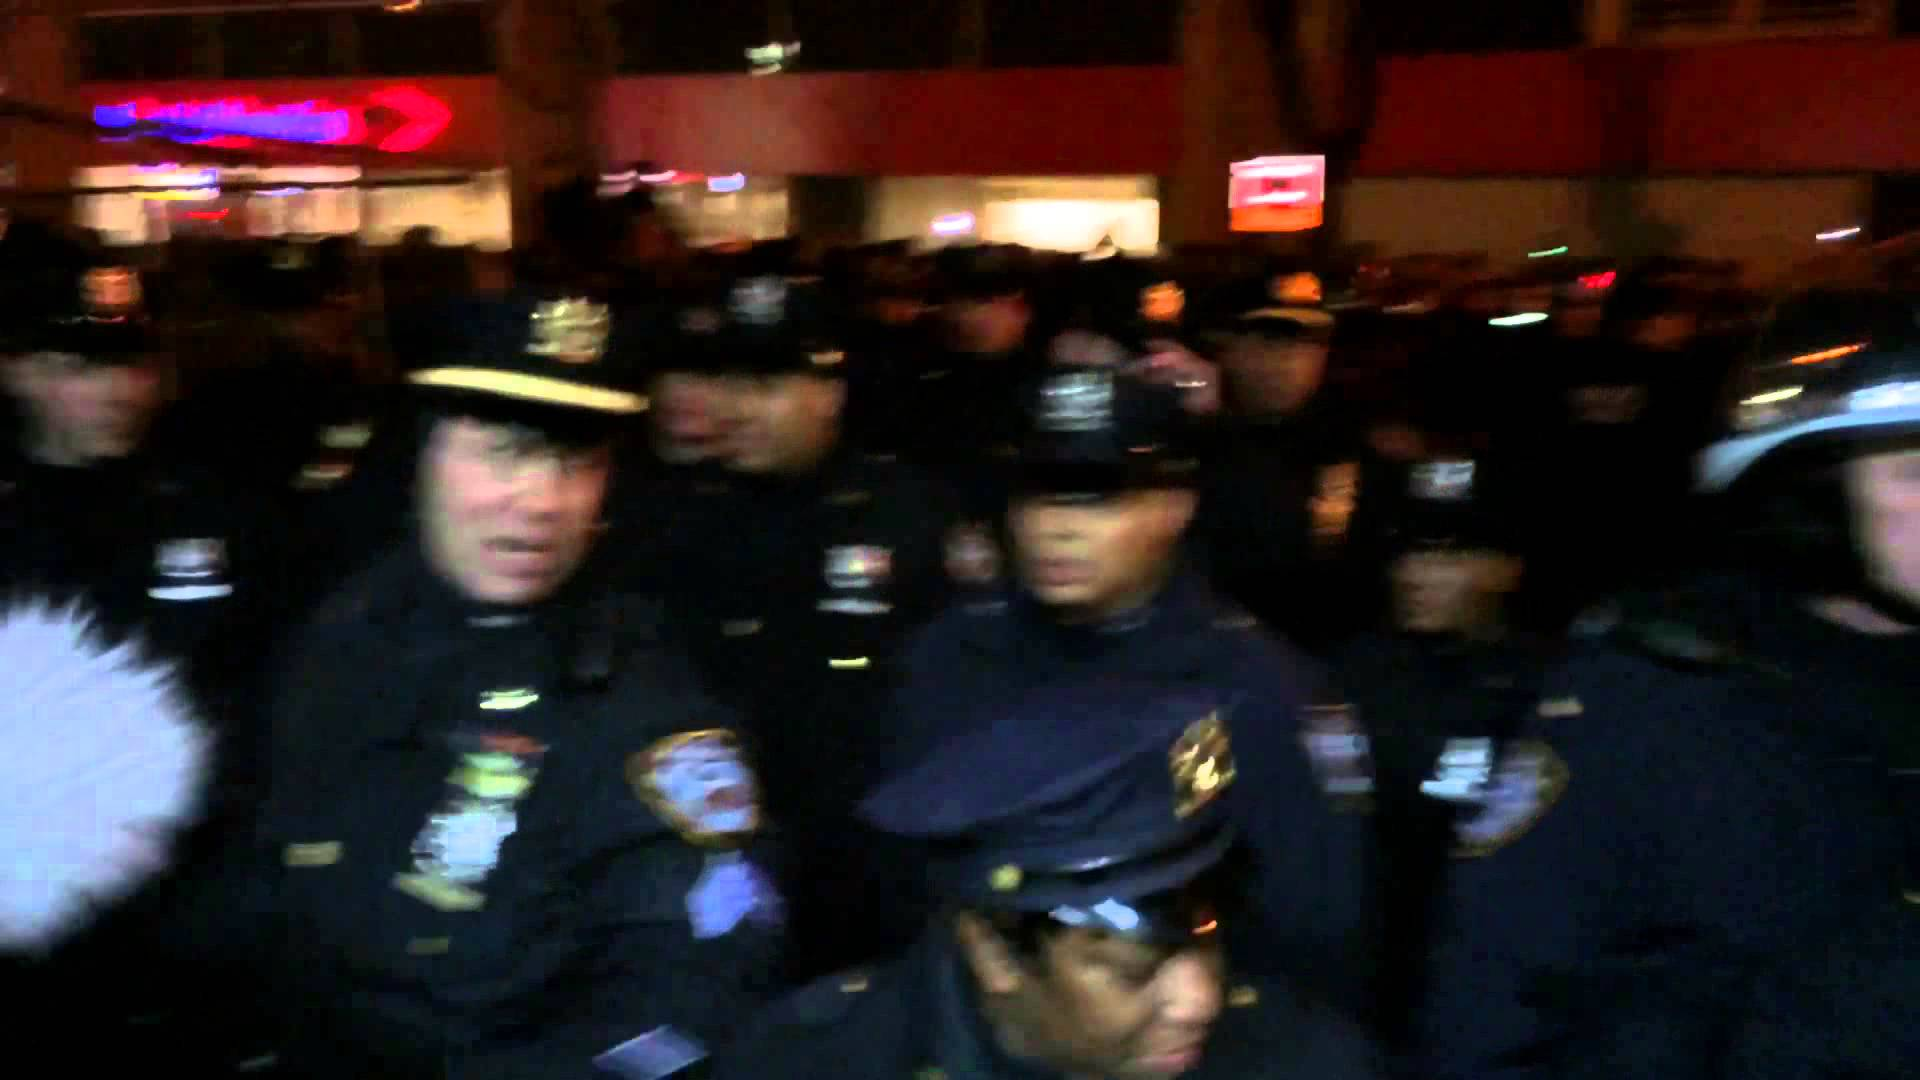 NYPD Kettle Protest Then Make Violent Arrests